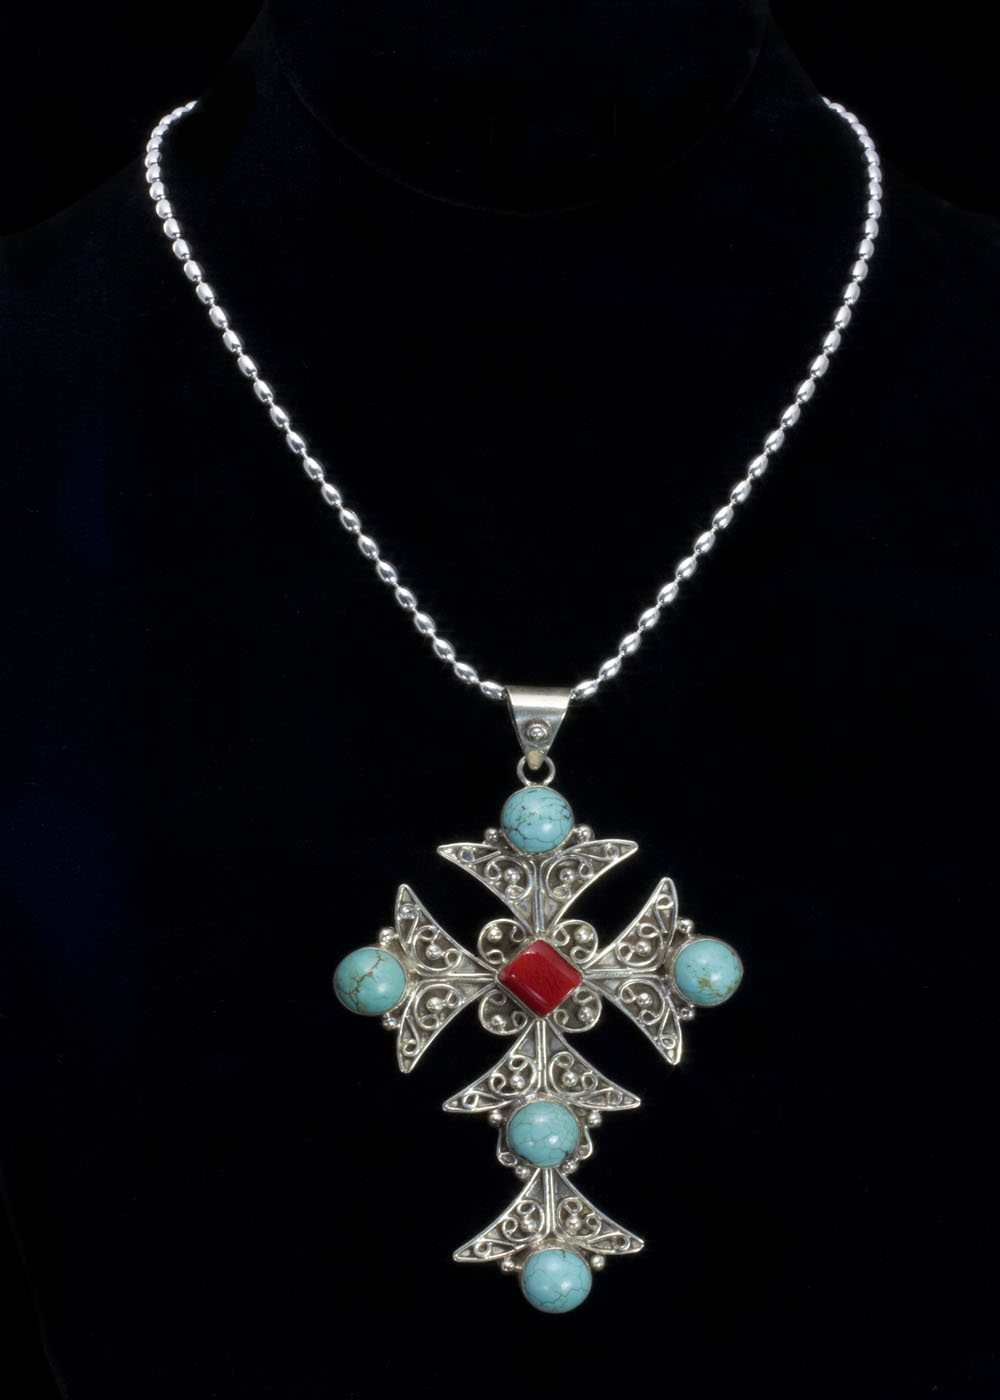 coral-cross-necklace-for-woman